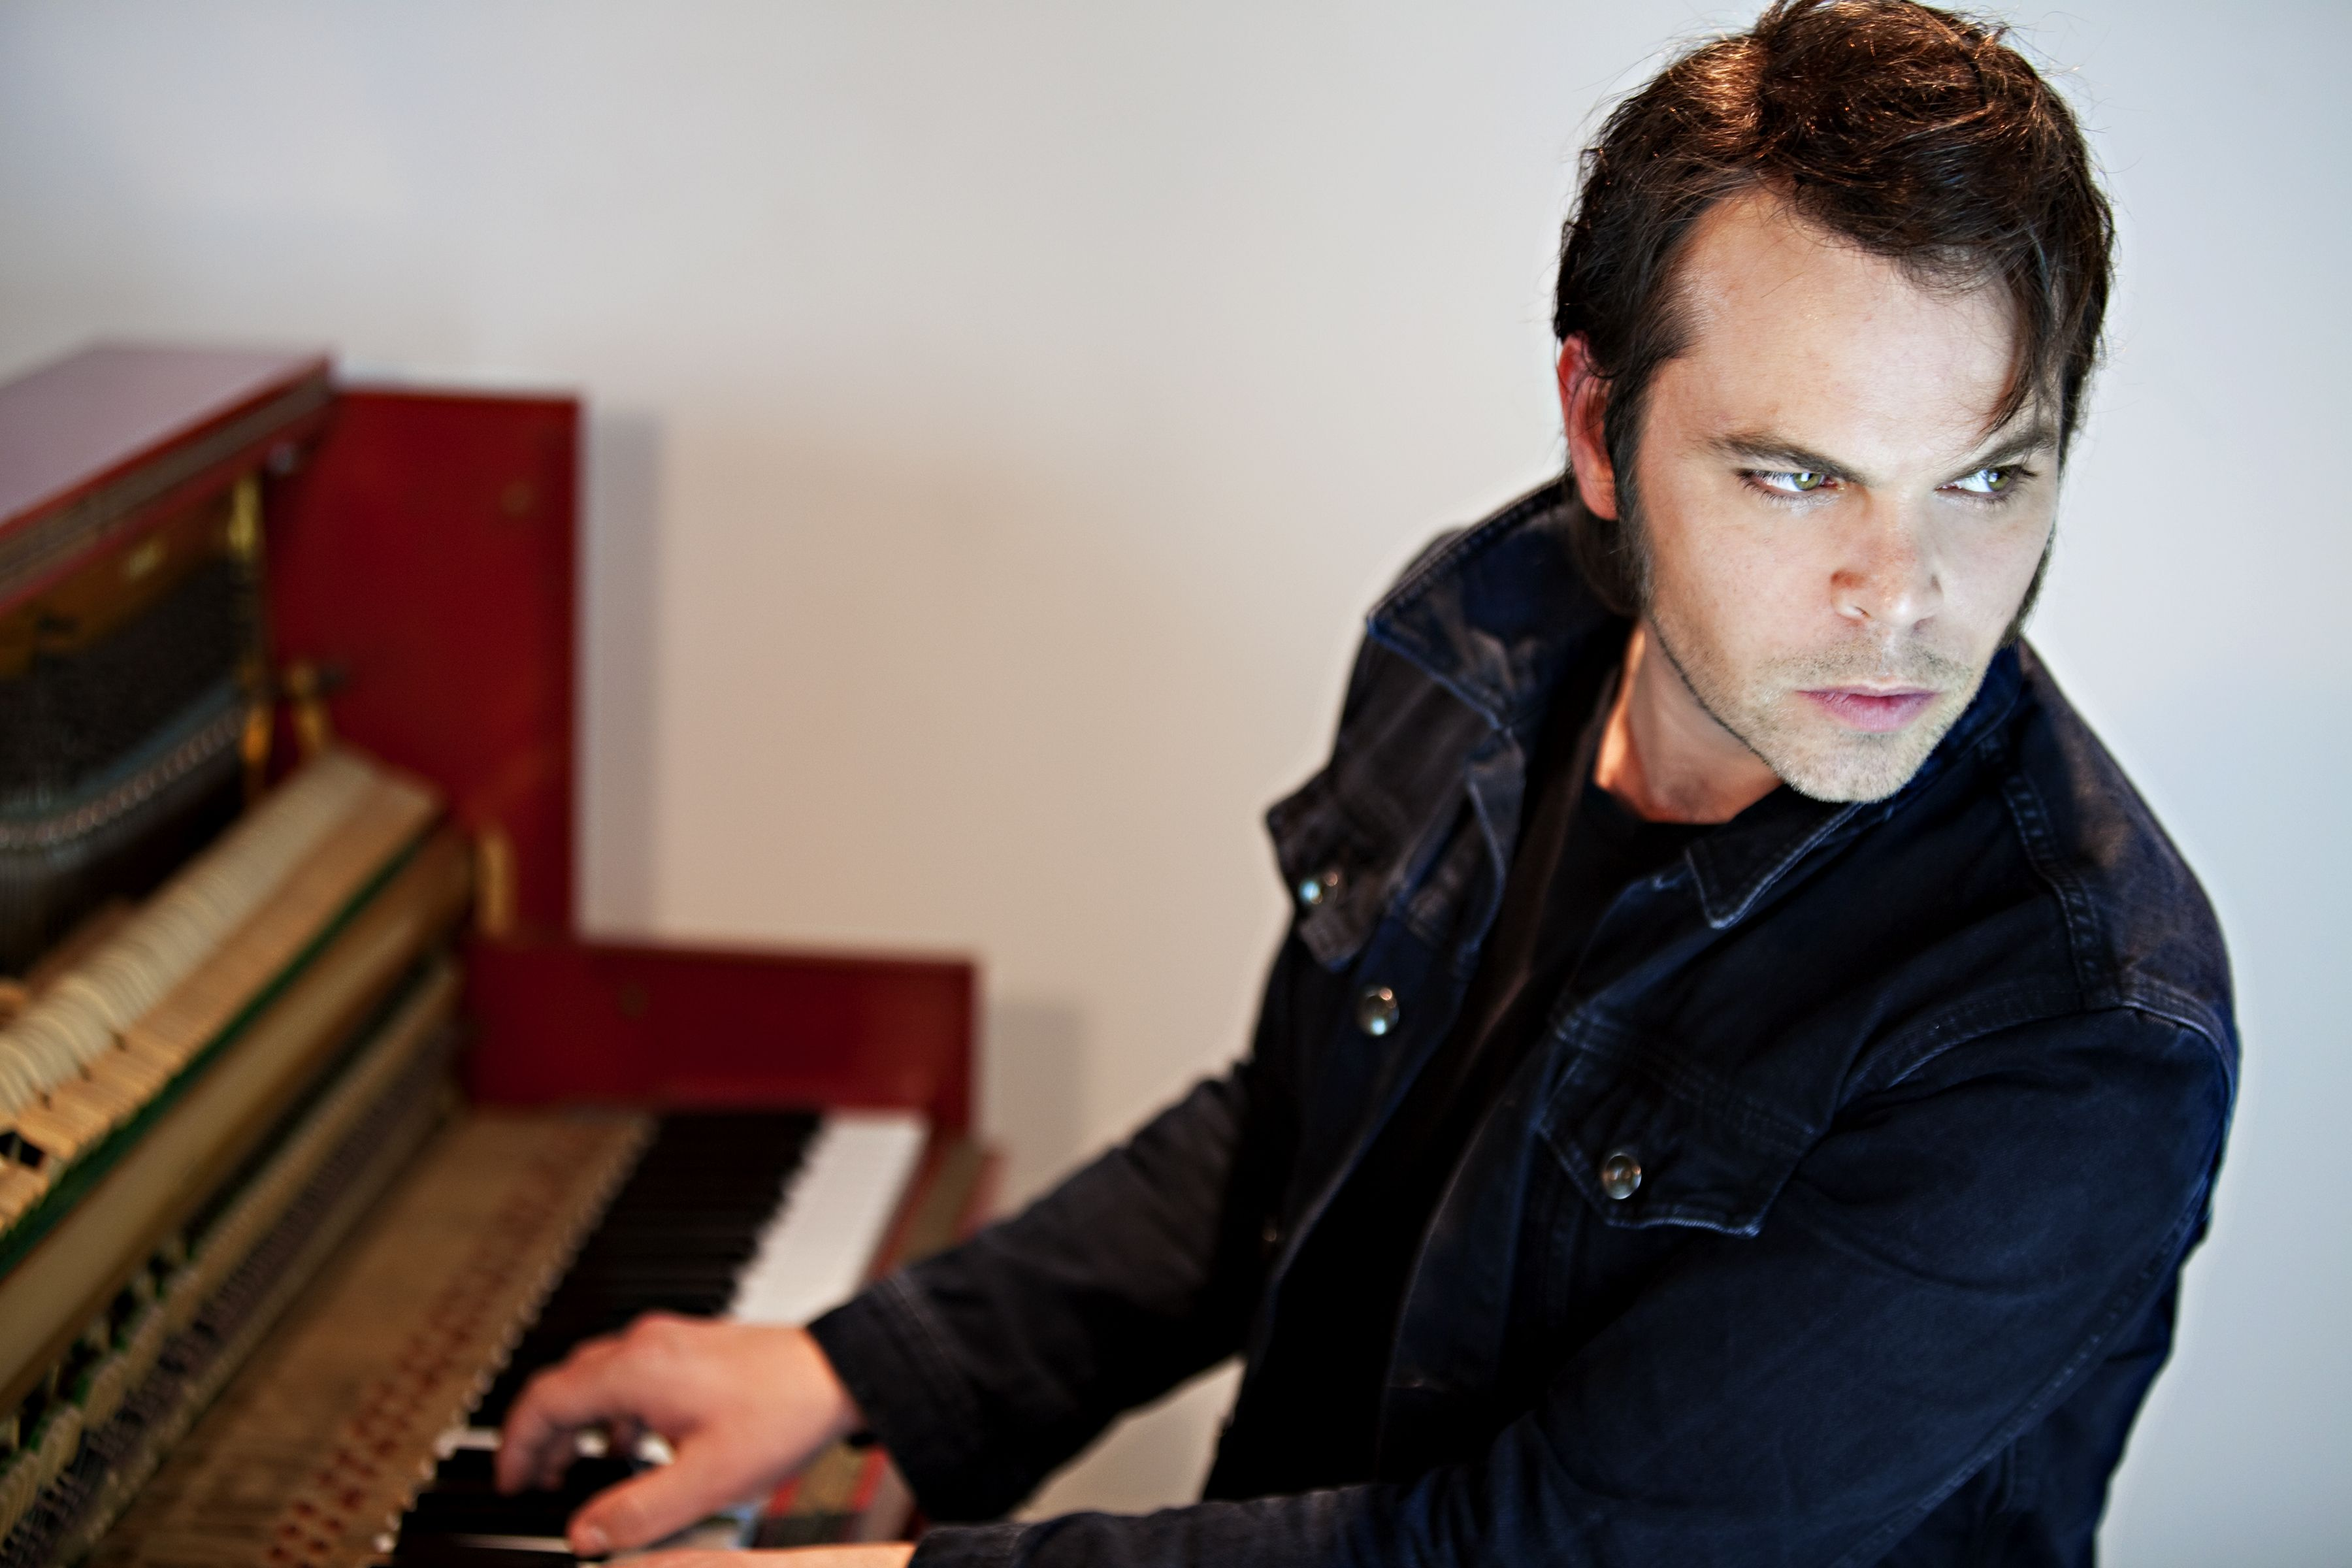 Gaz Coombes portrait photographed by Oxfordshire and London base